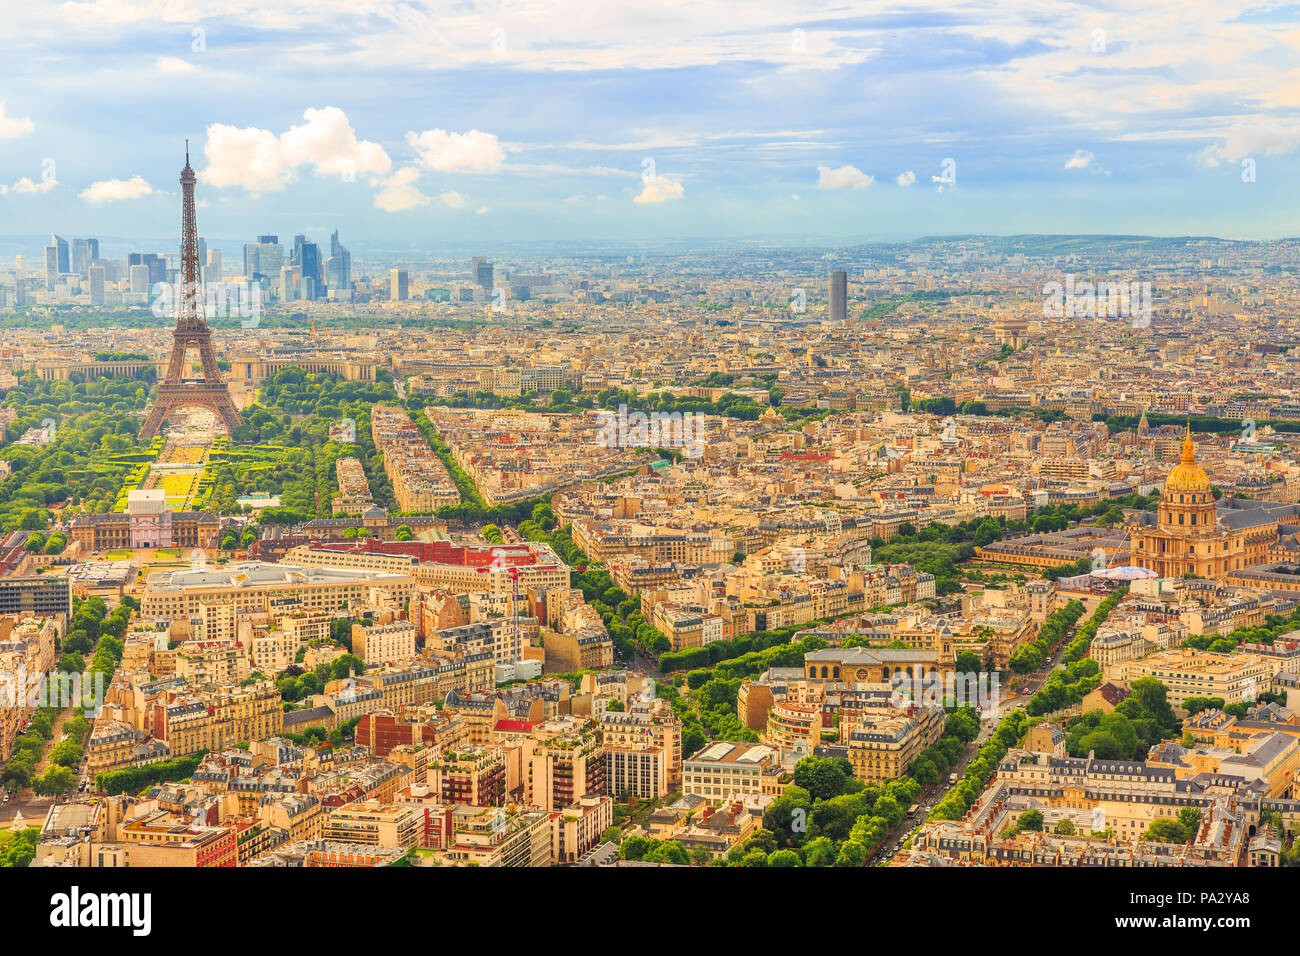 Tour Eiffel and national residence of the Invalids from Observatory Deck of Tour Montparnasse. Aerial view of Paris skyline and cityscape. Top of the Tour Montparnasse tower of Paris city in France. Stock Photo